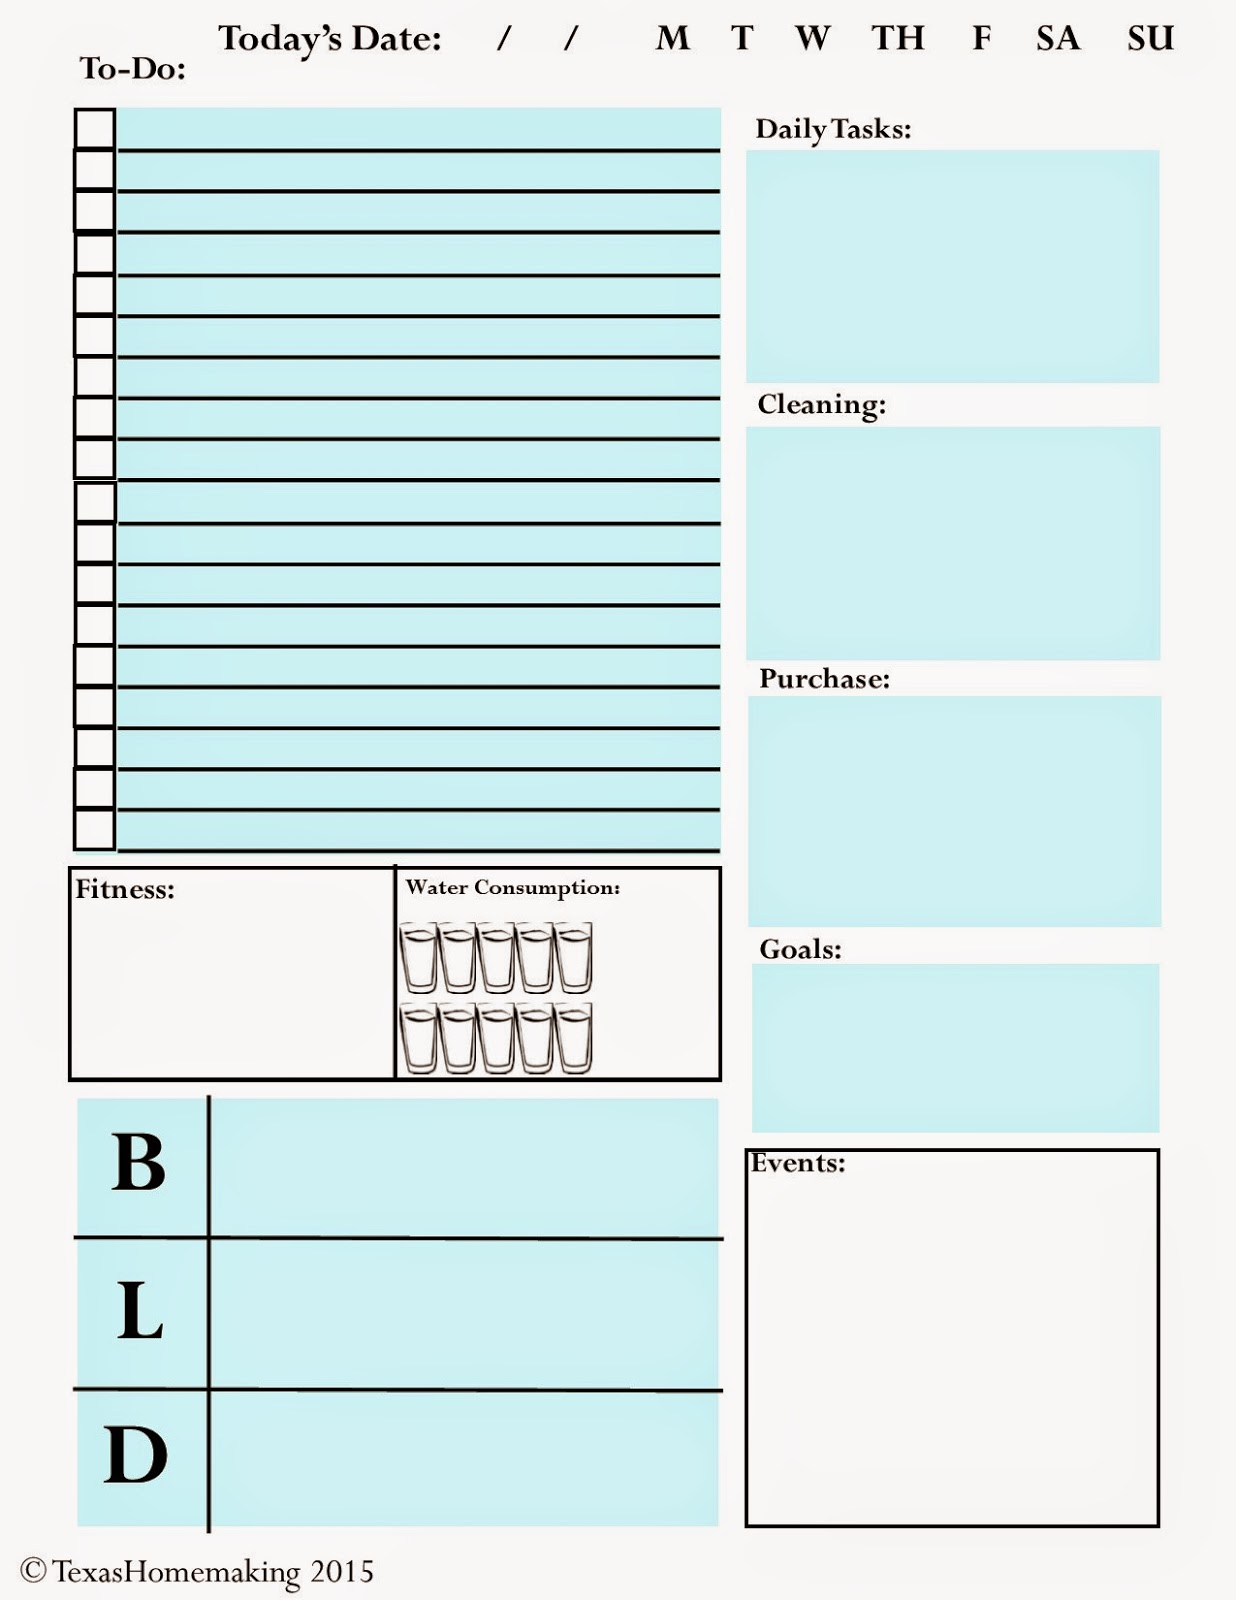 https://www.dropbox.com/s/k6ppuacumao5x25/Organization%20Sheet%20TexasHomemaking.pdf?dl=0